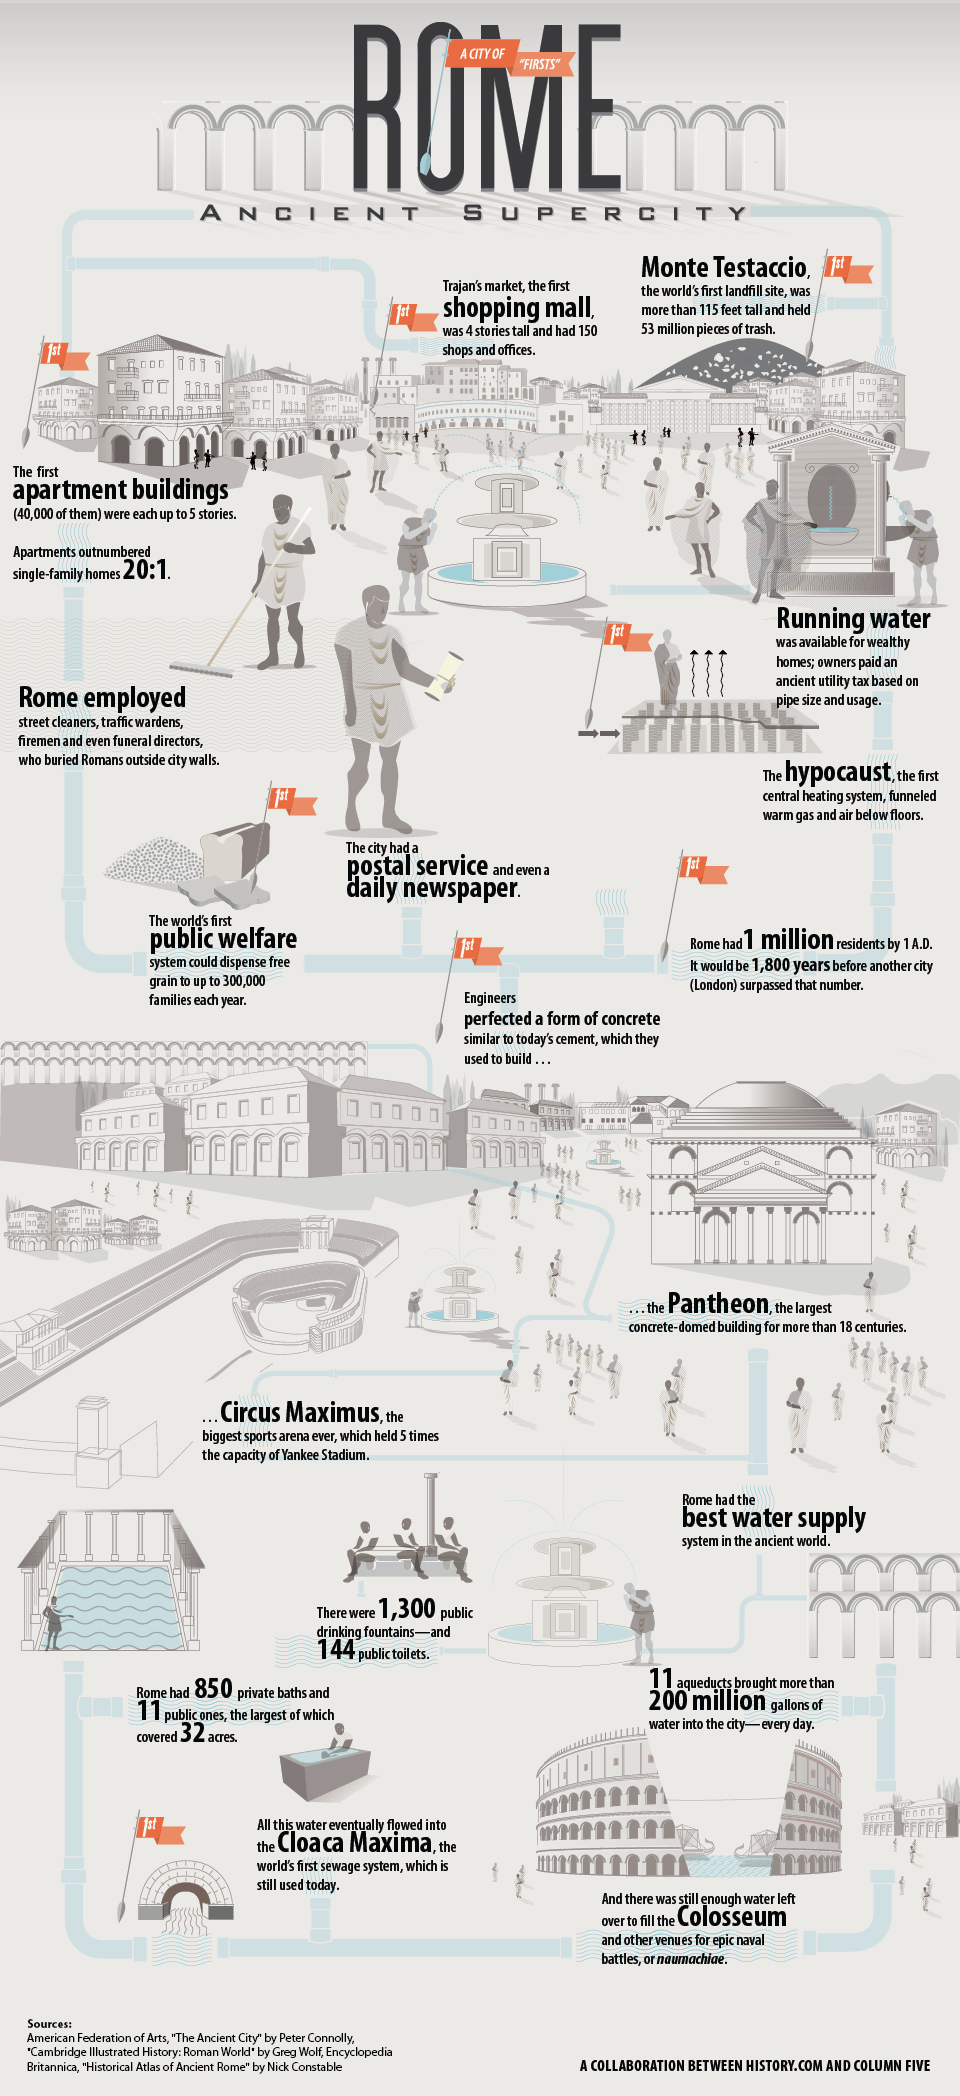 Incredible Infographic on the Impact of Ancient Rome, a City of Firsts